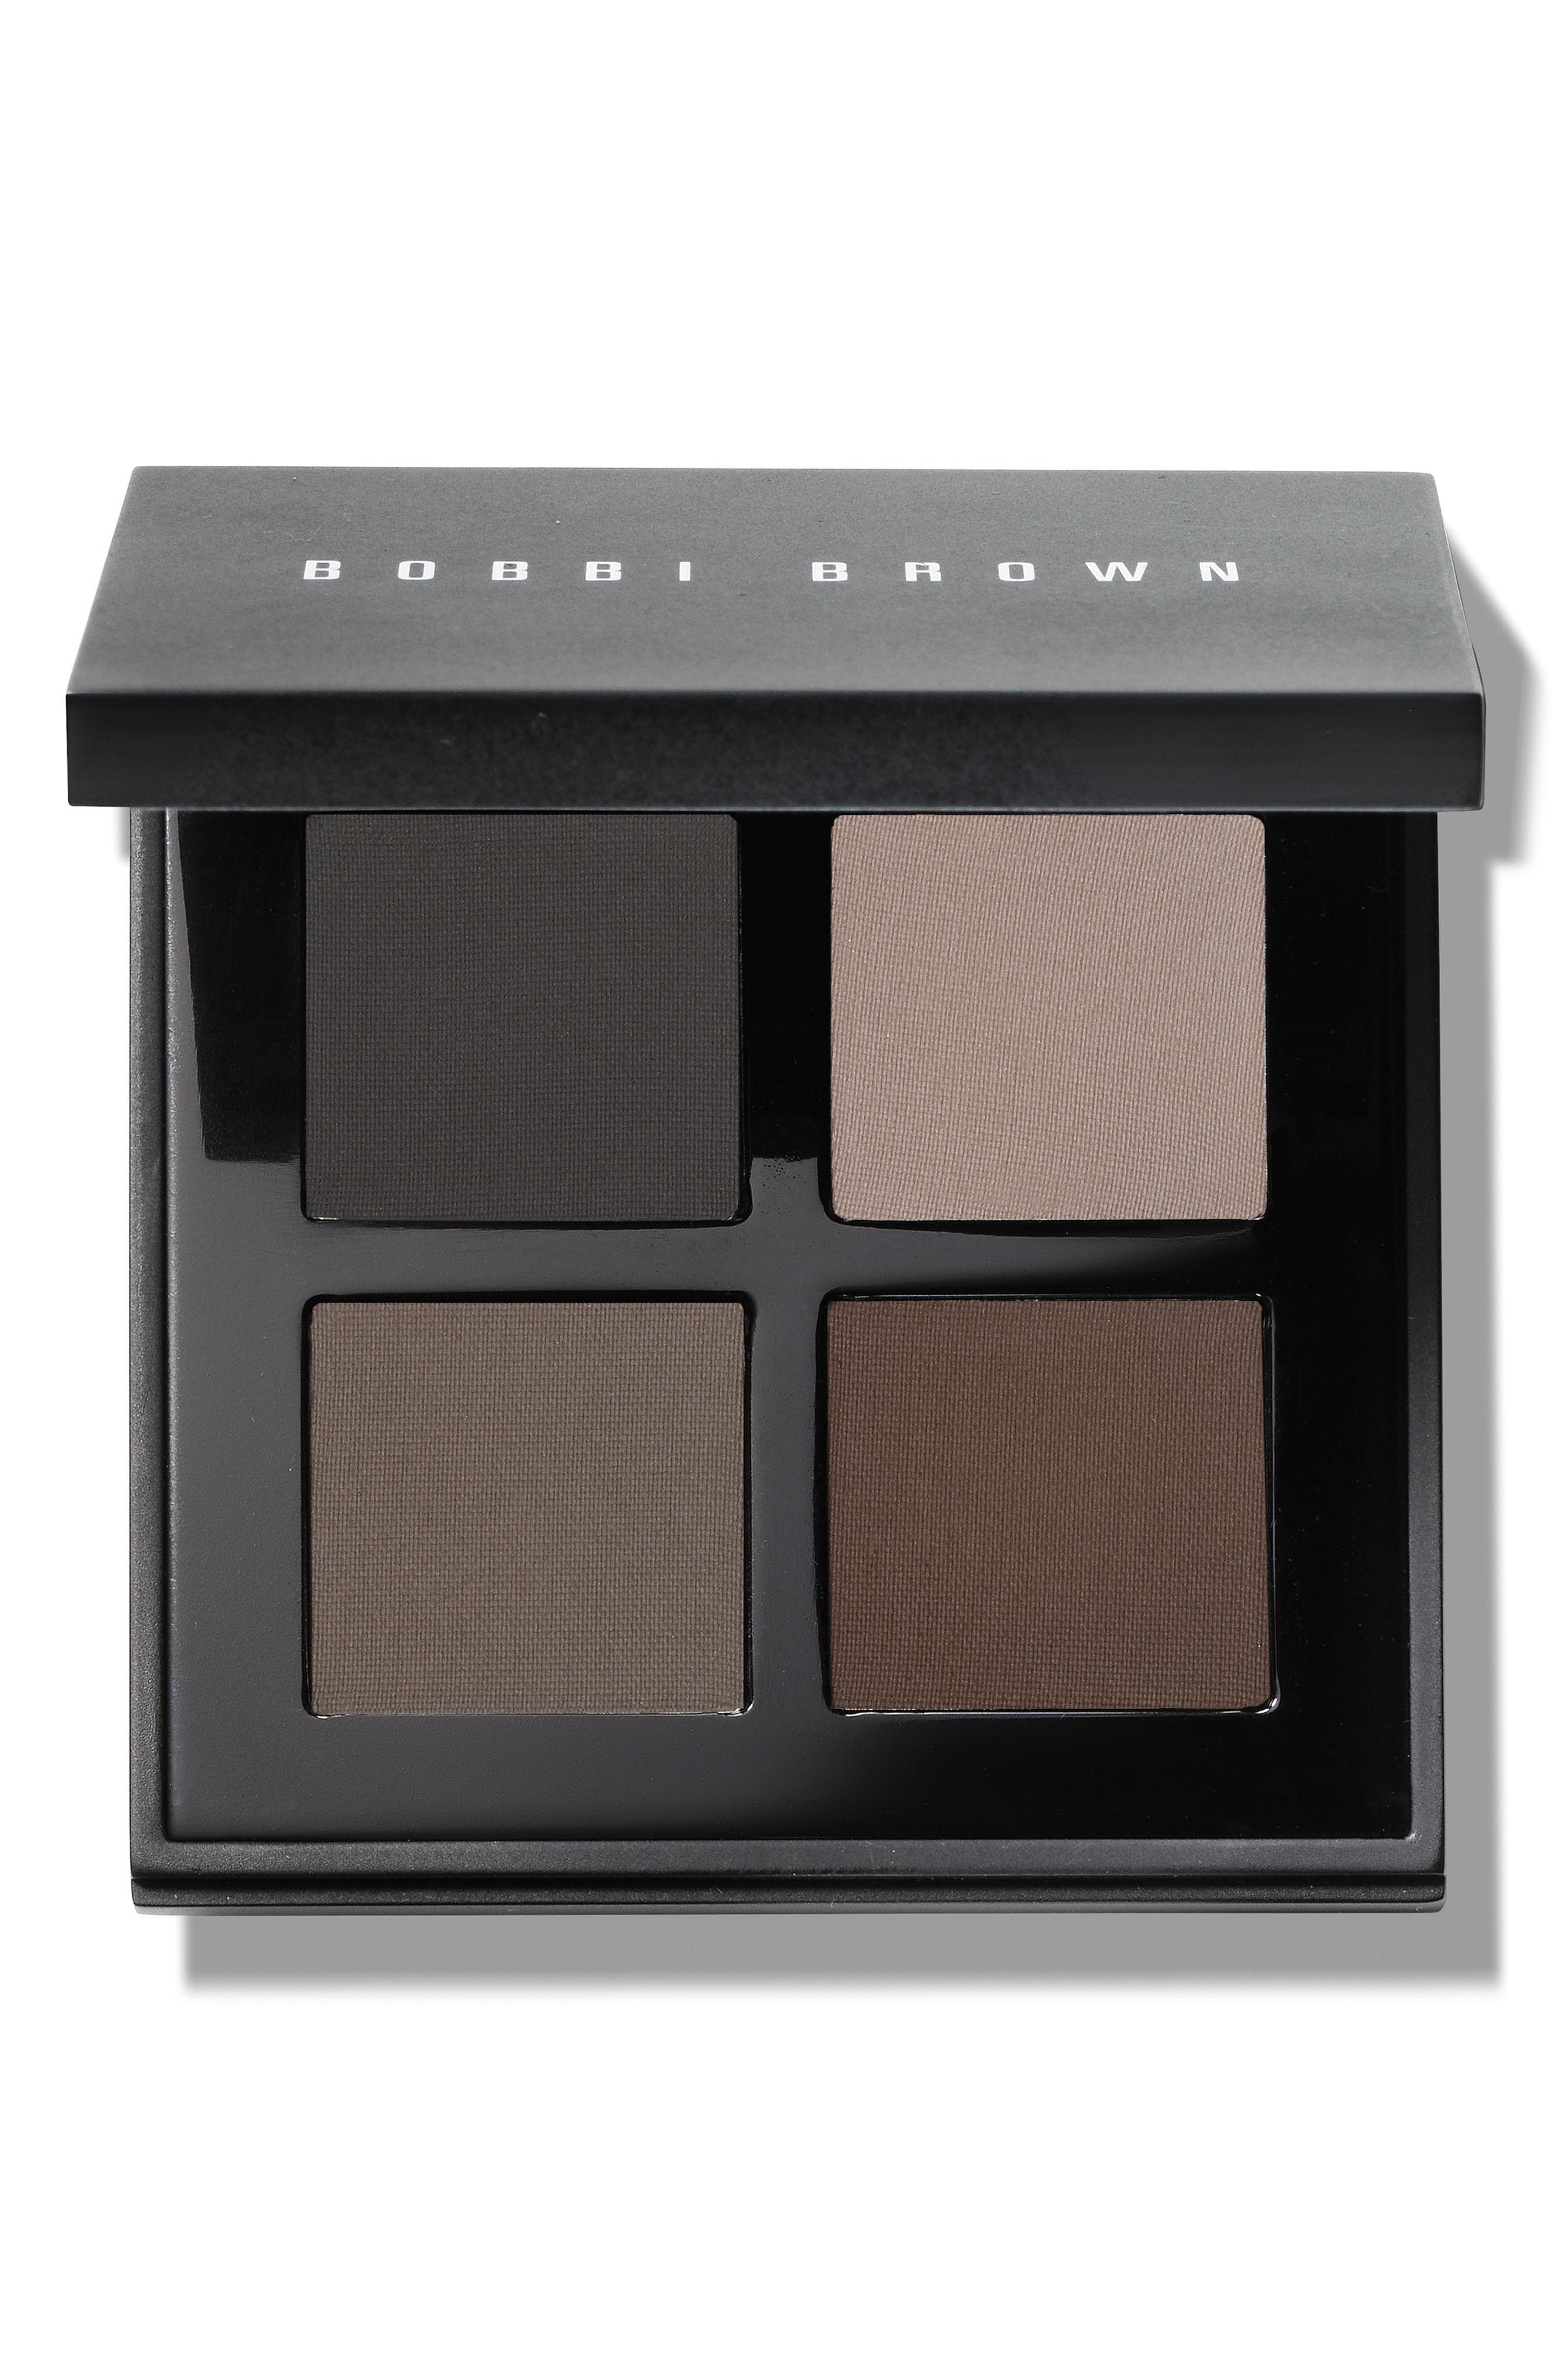 Downtown Cool Eyeshadow Palette,                             Main thumbnail 1, color,                             000